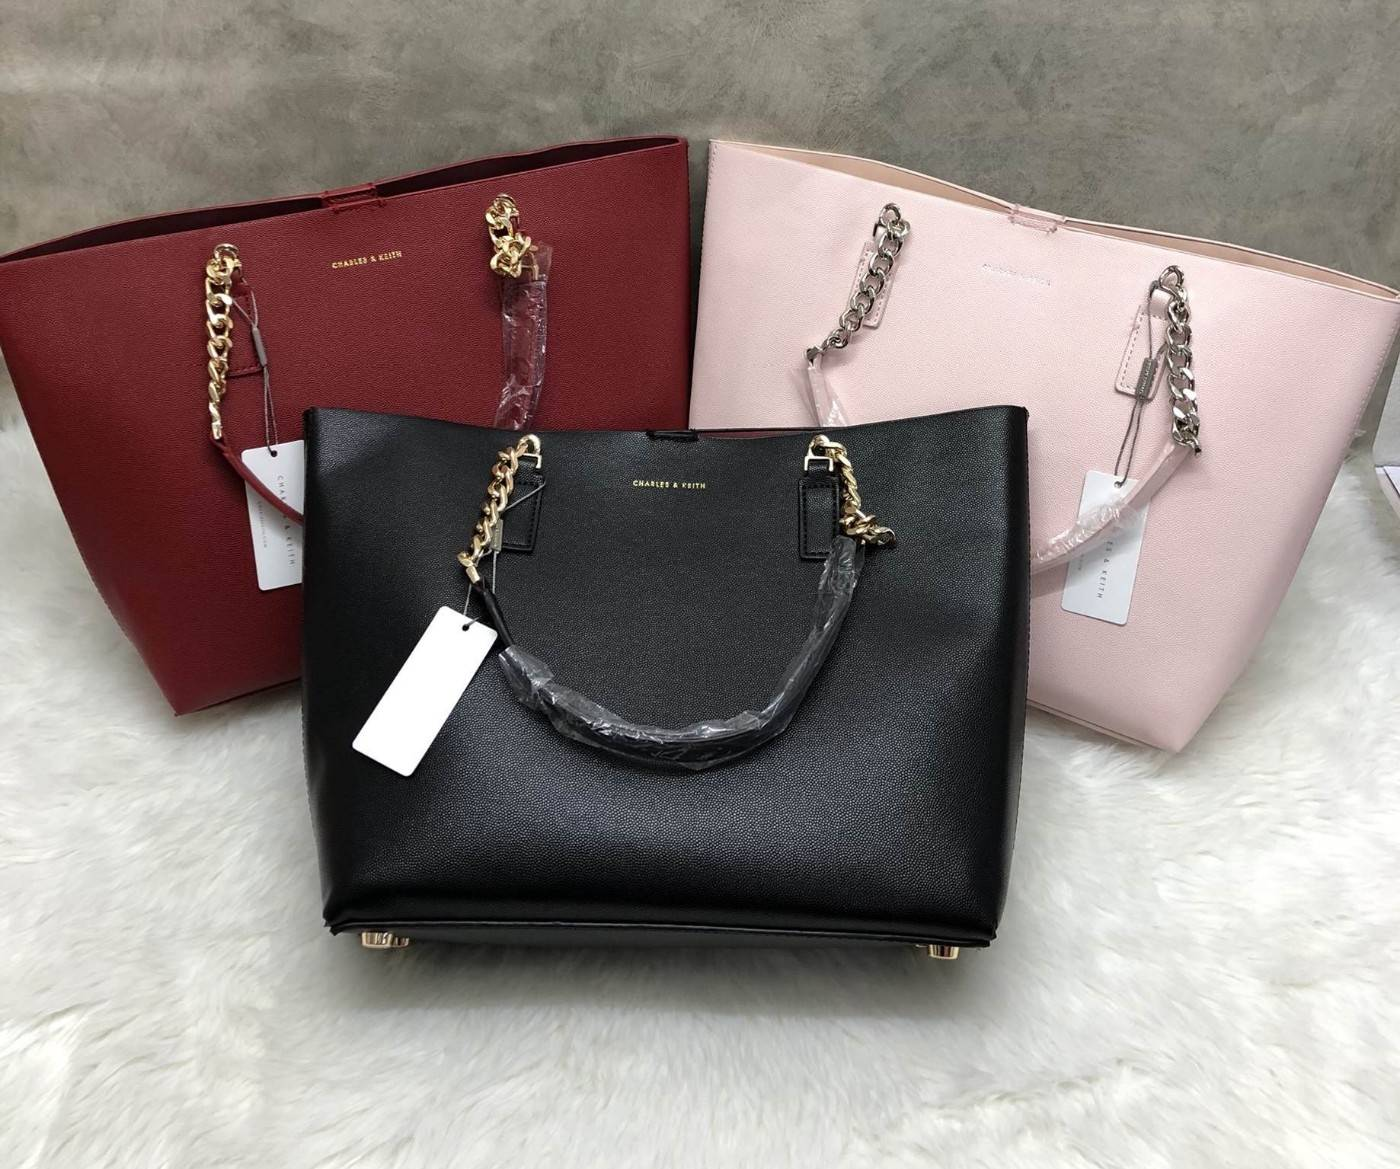 CHARLES & KEITH DOUBLE CHAIN STRAP TOTE BAG 2016